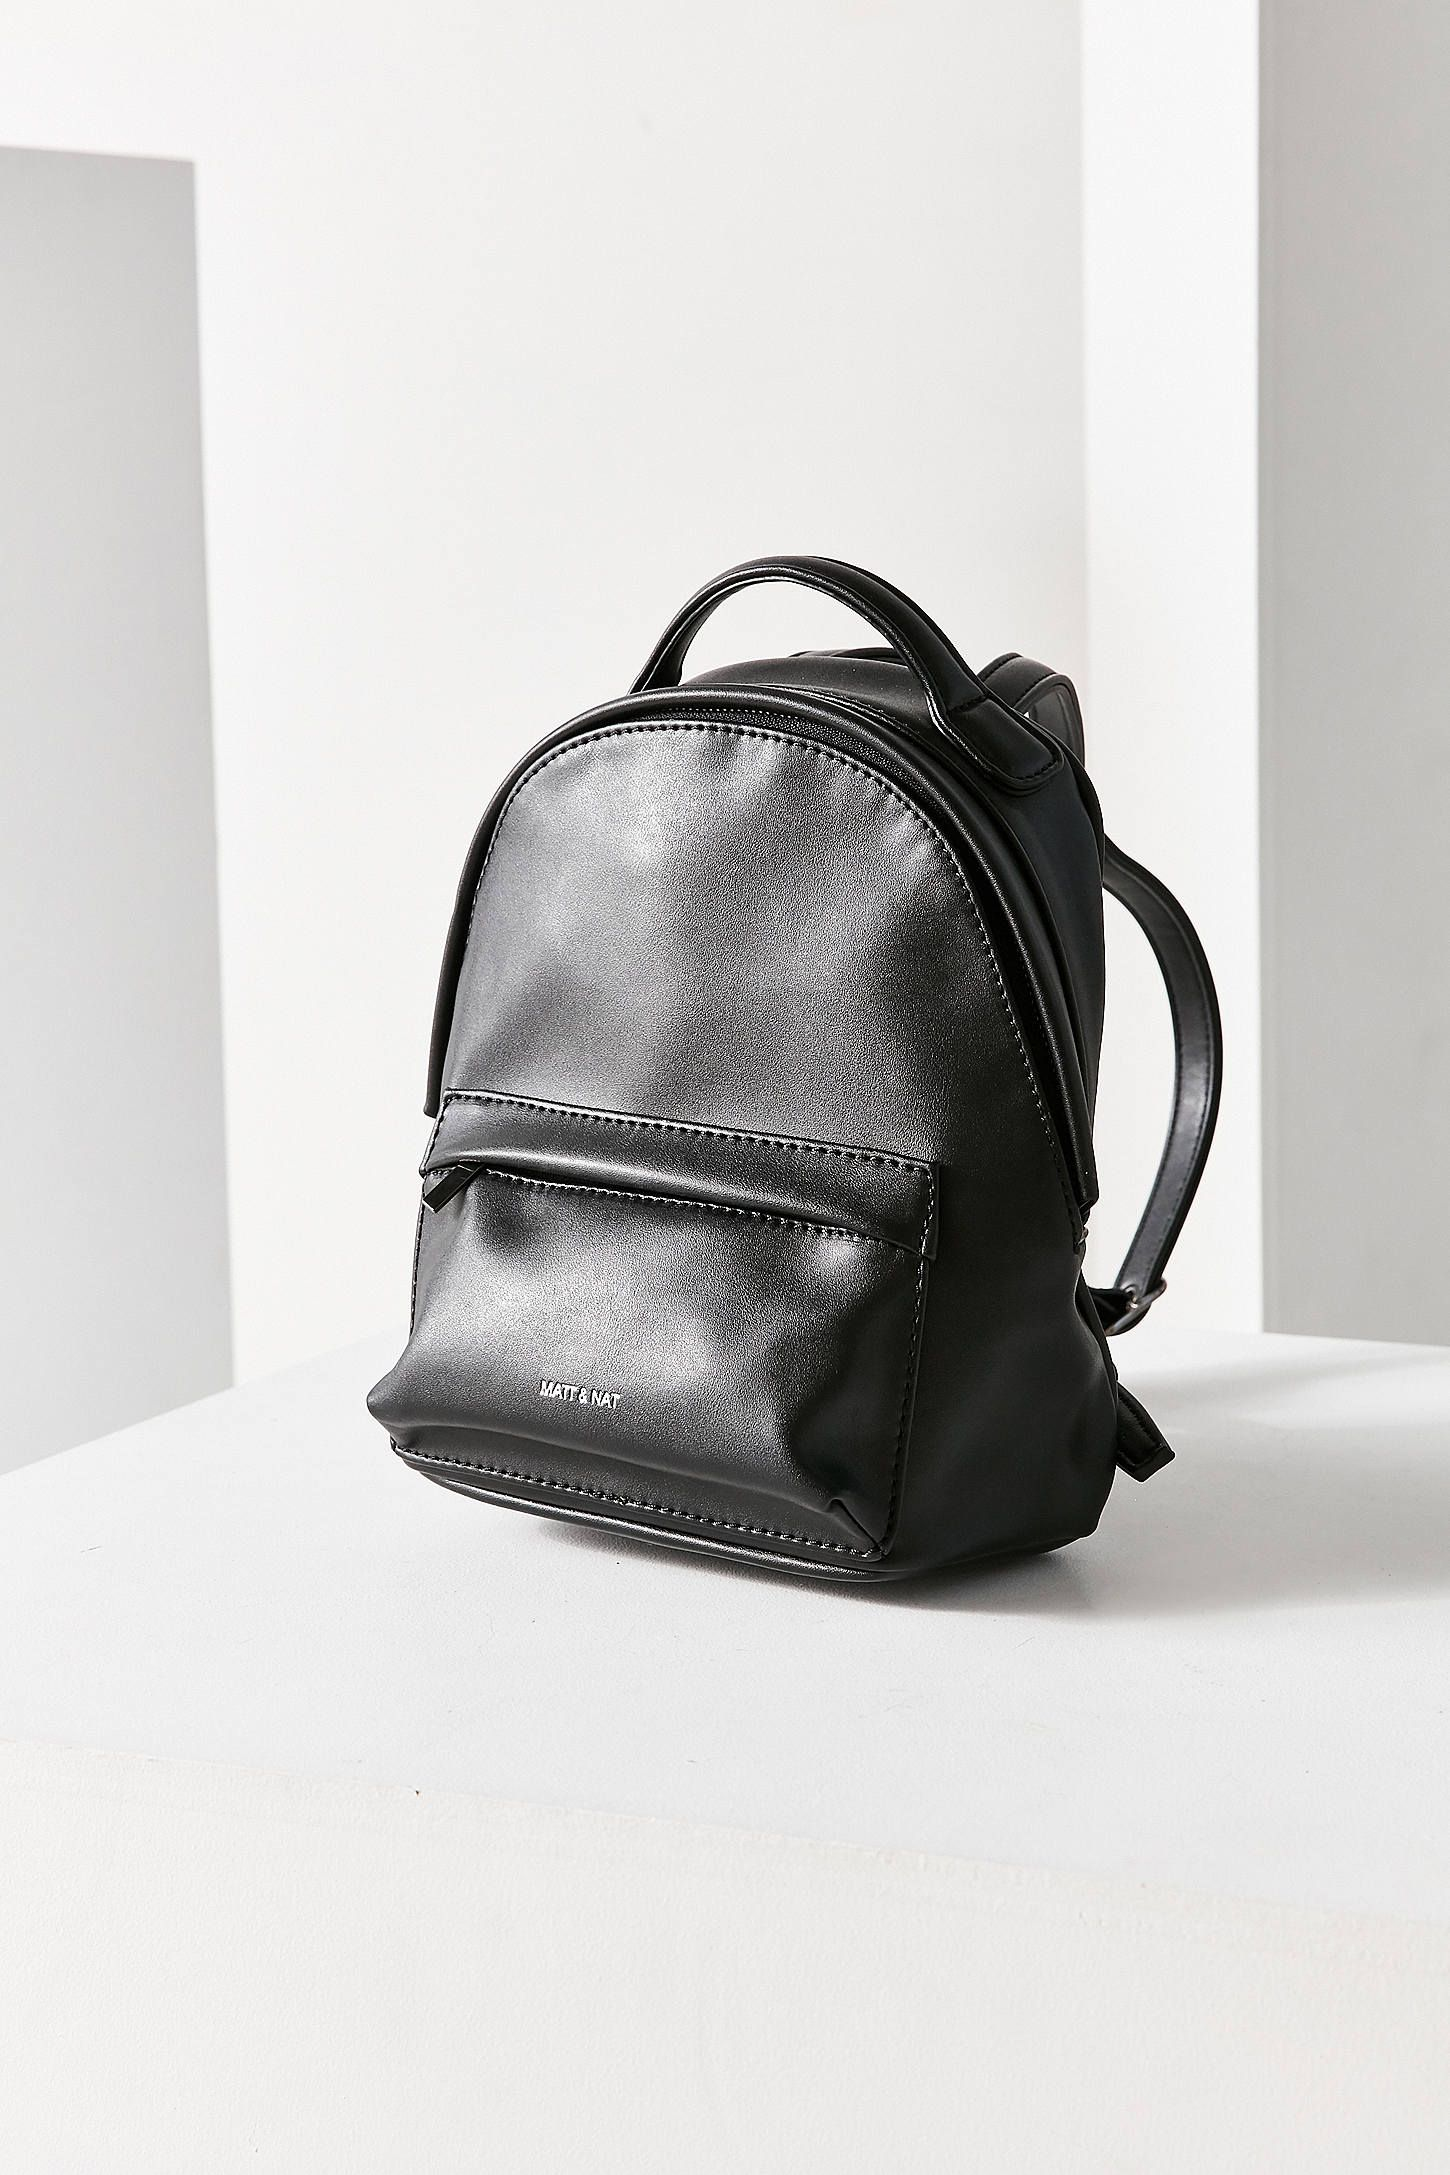 11eae9a79d Lyst - Urban Outfitters Urban Renewal Vintage Small Leather ... Totally  vintage mini backpack ...